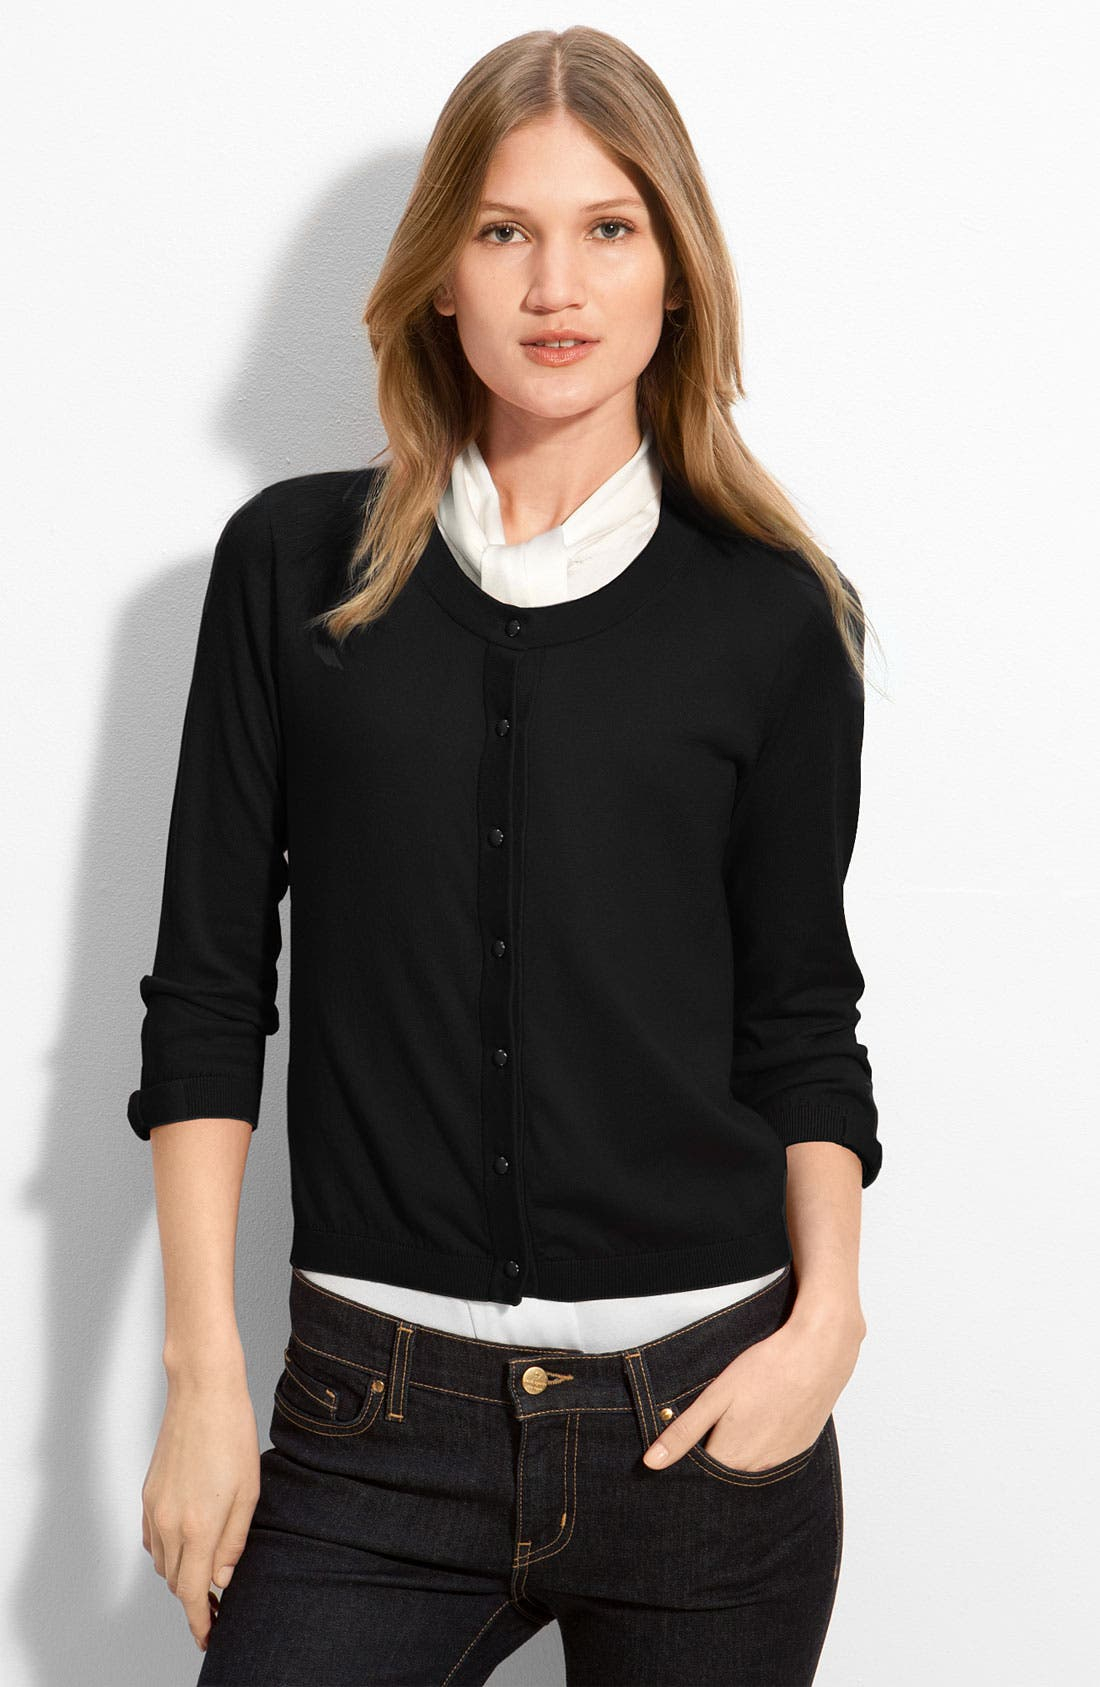 Alternate Image 1 Selected - kate spade new york 'caroline' cardigan